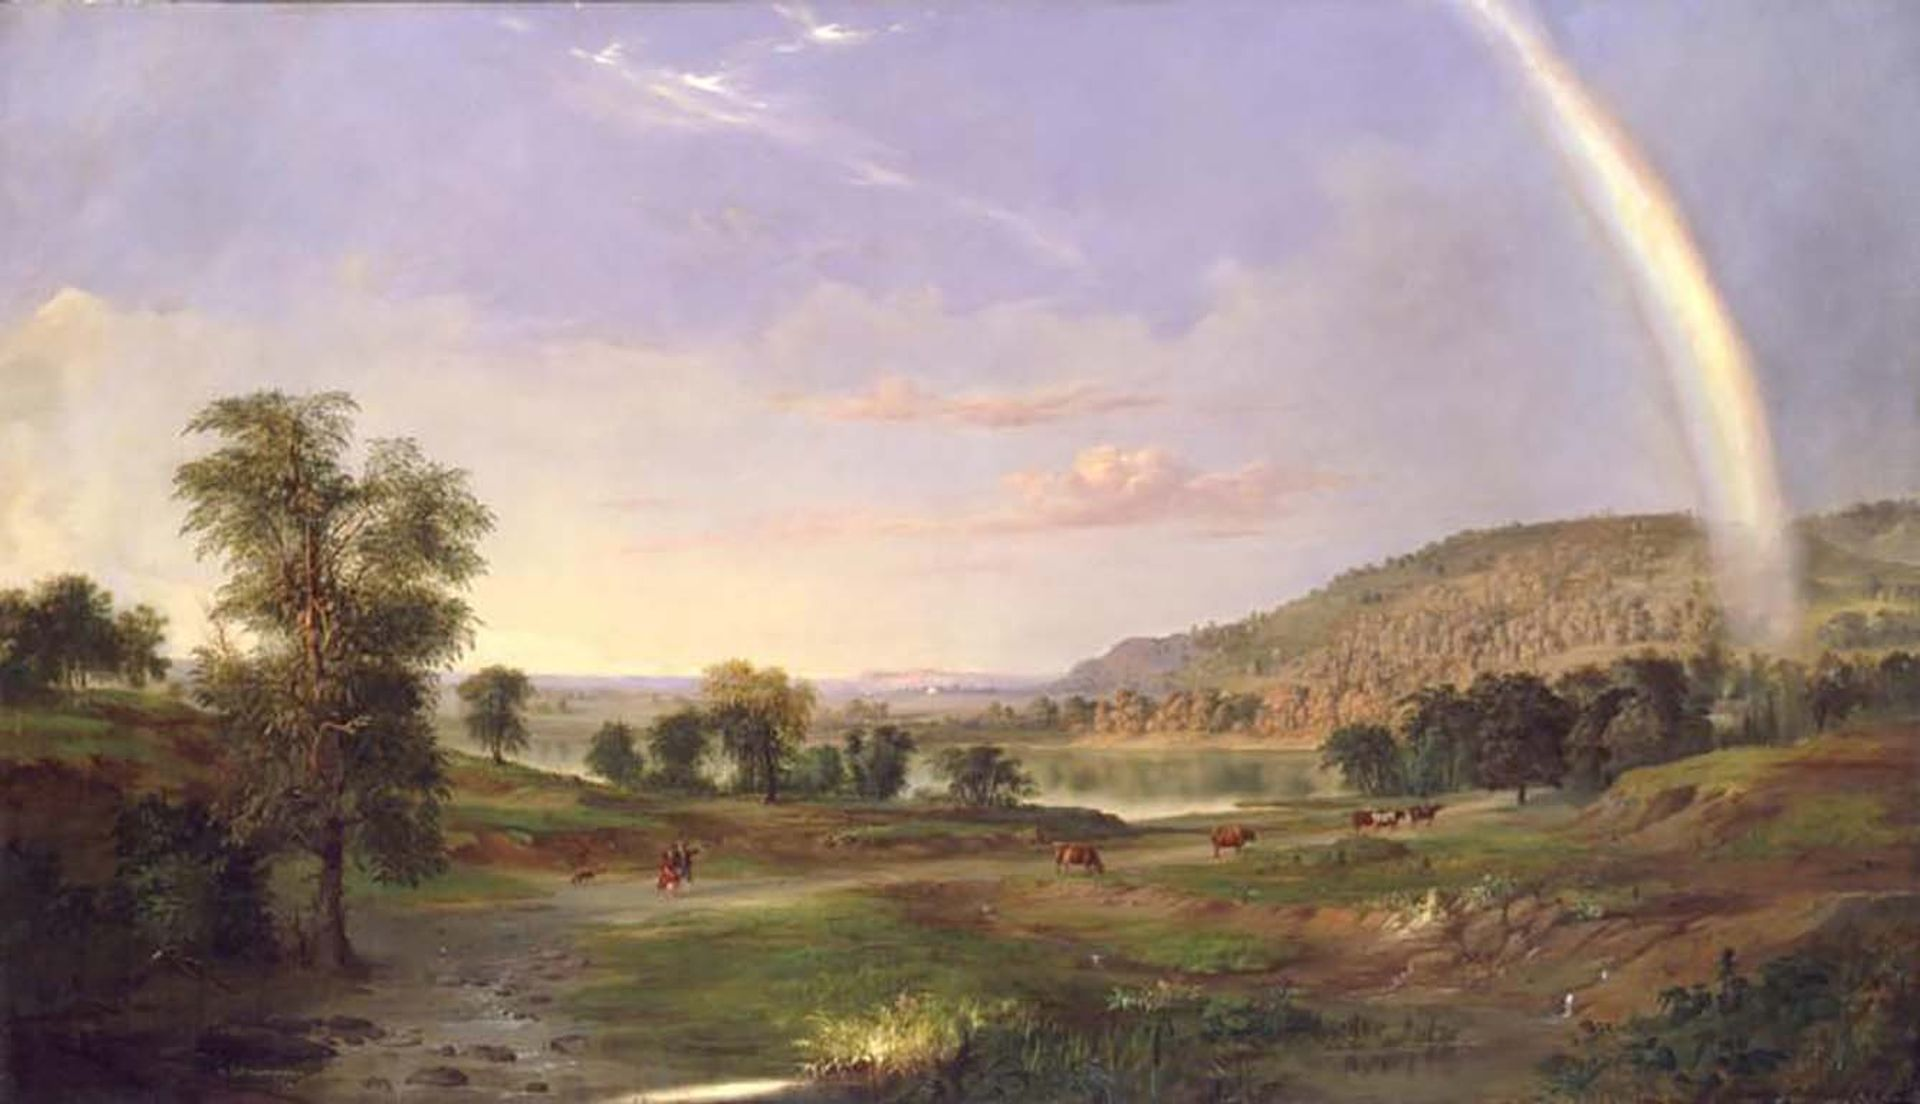 Robert S. Duncanson's Landscape with Rainbow (1859), from the Smithsonian American Art Museum Smithsonian American Art Museum